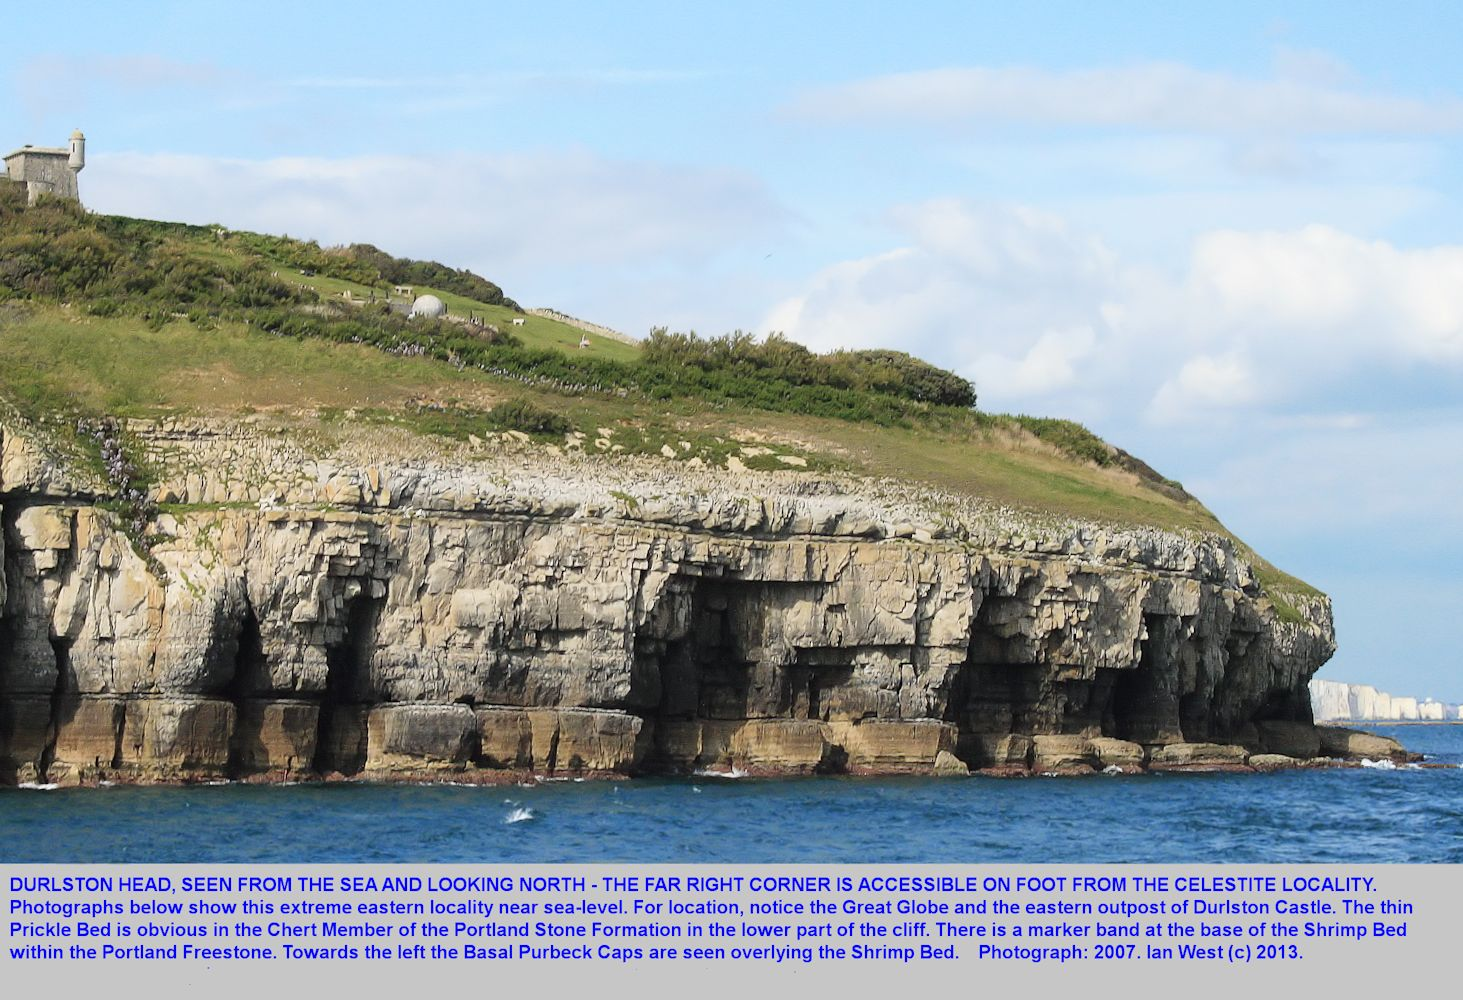 The easternmost corner of Durlston Head, Dorset, as seen from the sea in 2007, and with the foot of the cliffs  just accessible on foot from the celestite exposure and the Jagged Rock